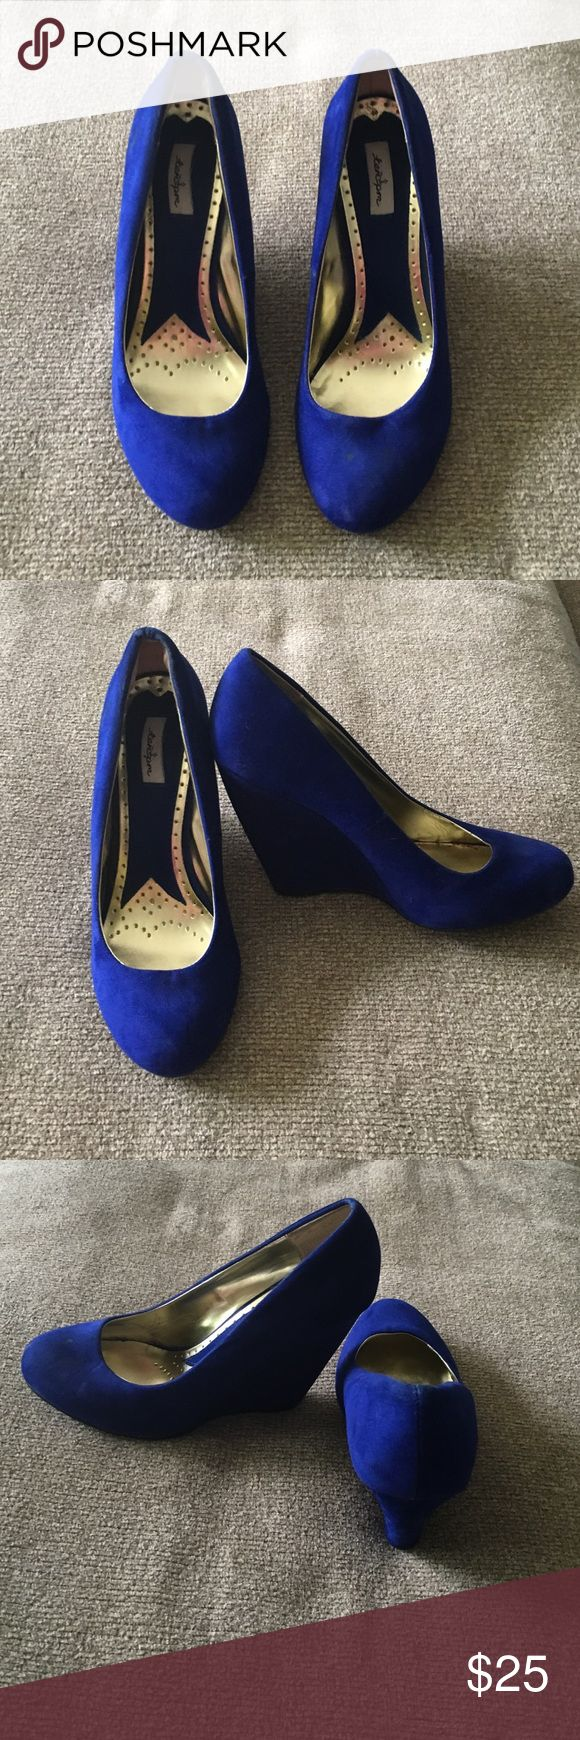 Royal Blue Suede Wedges Worn to a wedding, but ultimately are too small for my feet. I wish they fit comfortably, because they are so cute! Purchased at Francesca's. Shoes Wedges